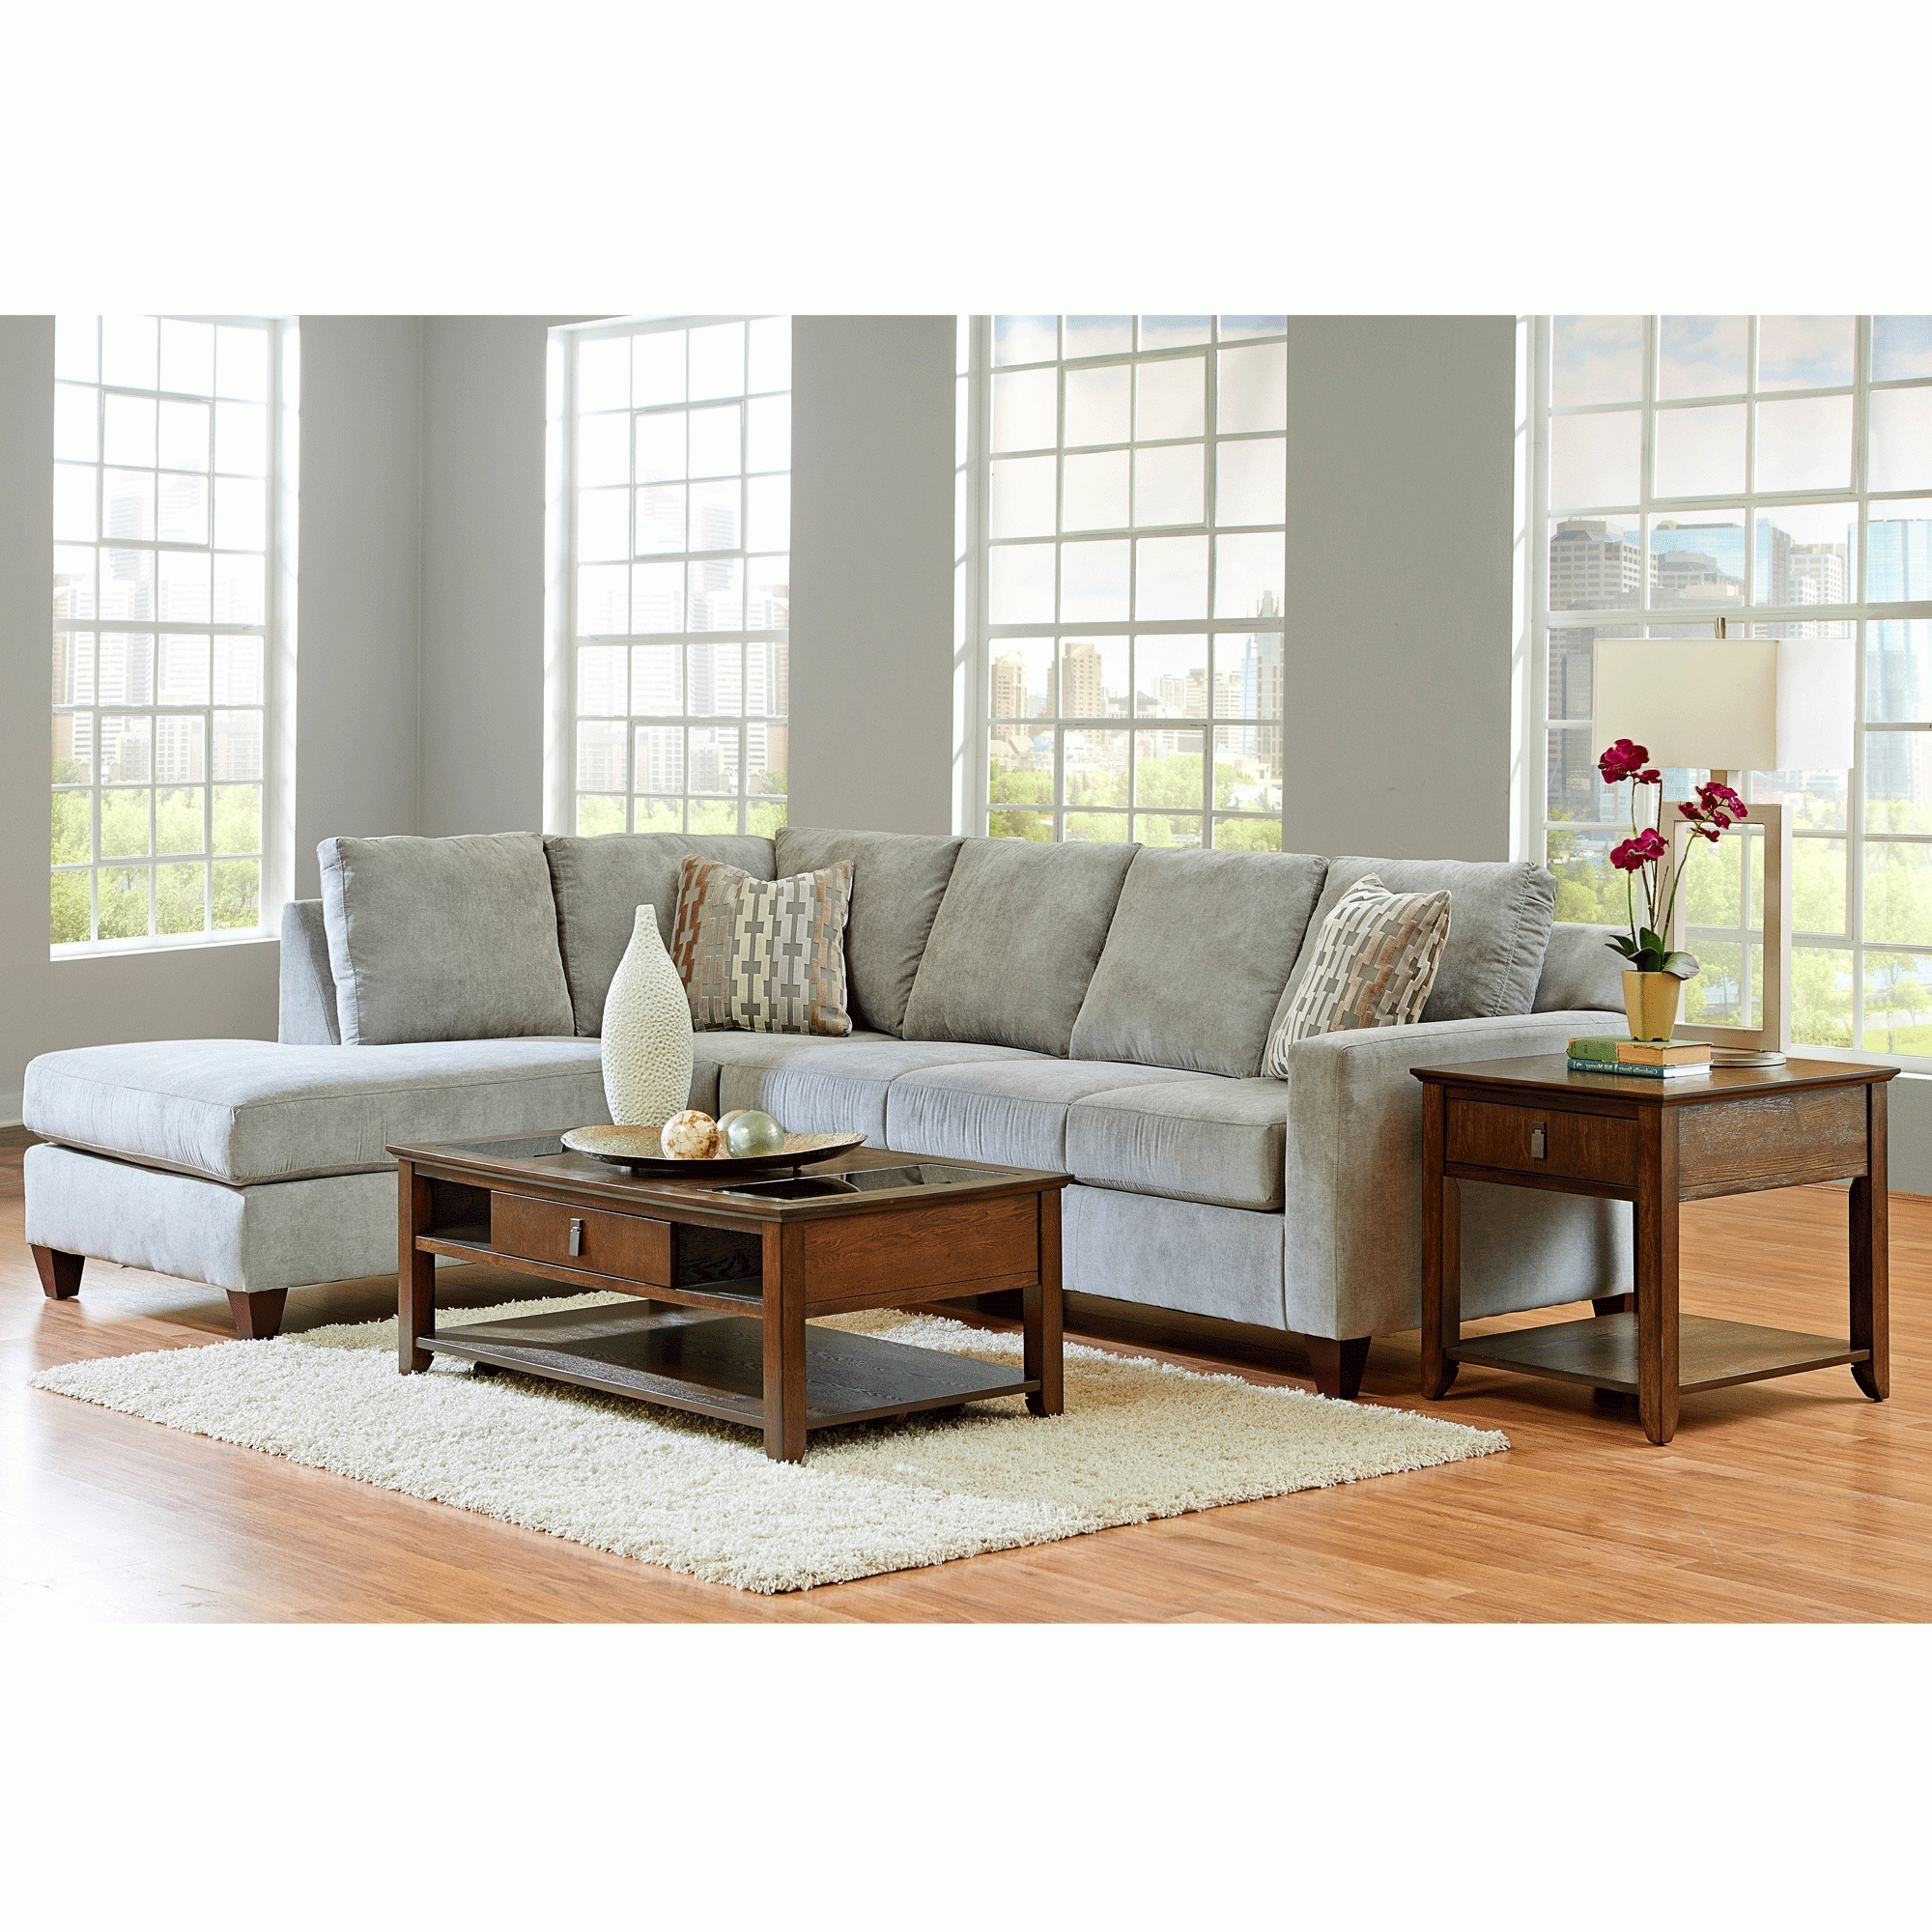 Sectional Couches – Bernie & Phyl's Furniture (View 16 of 20)